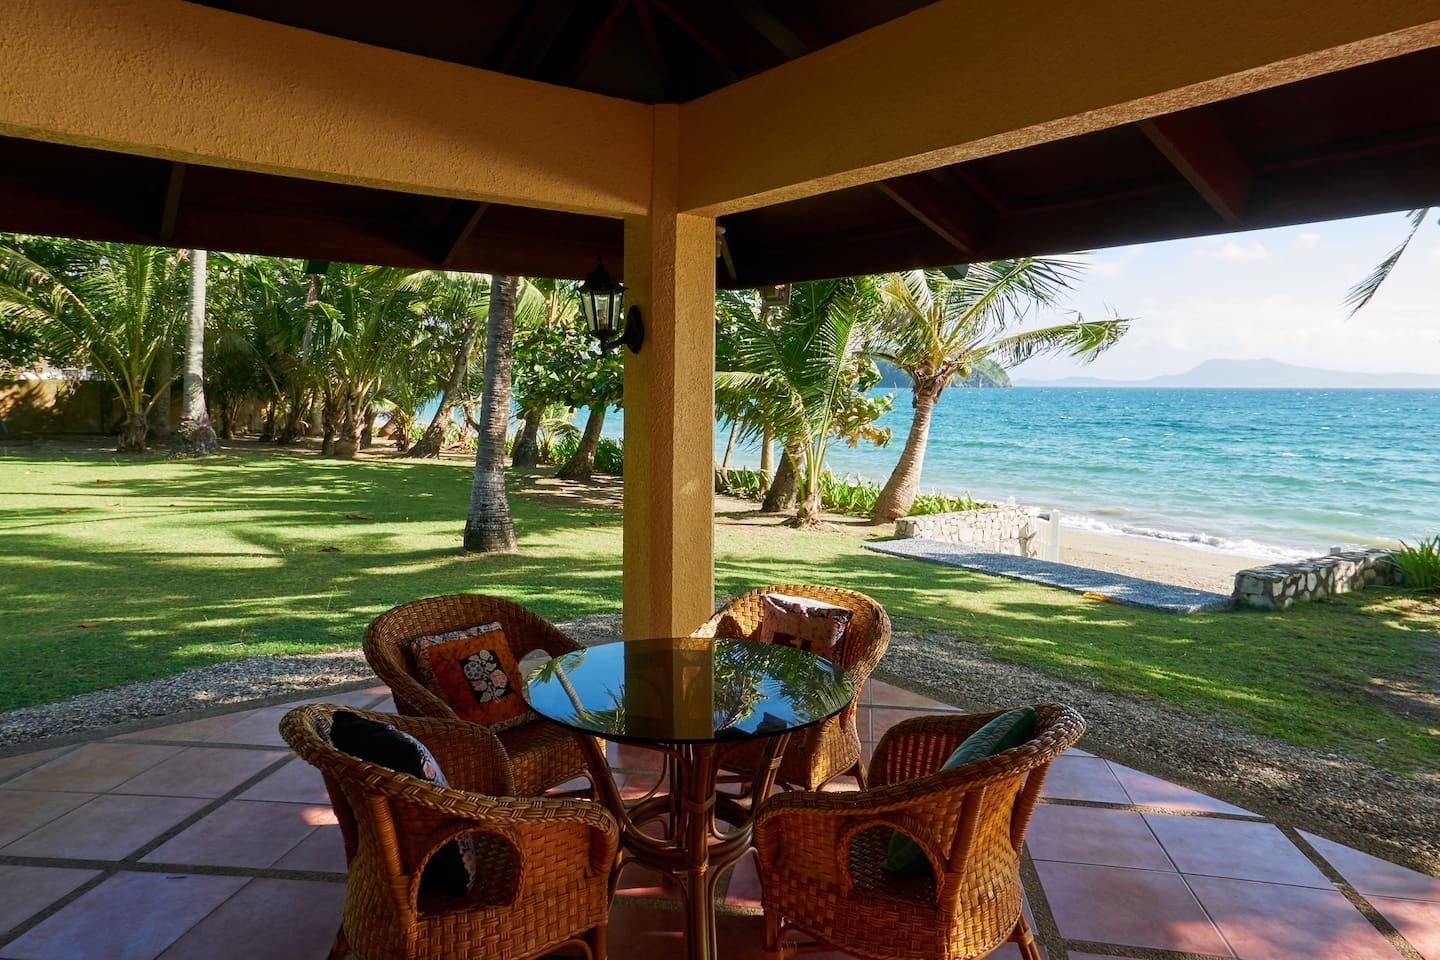 hangout in this lovely veranda looking over the beach